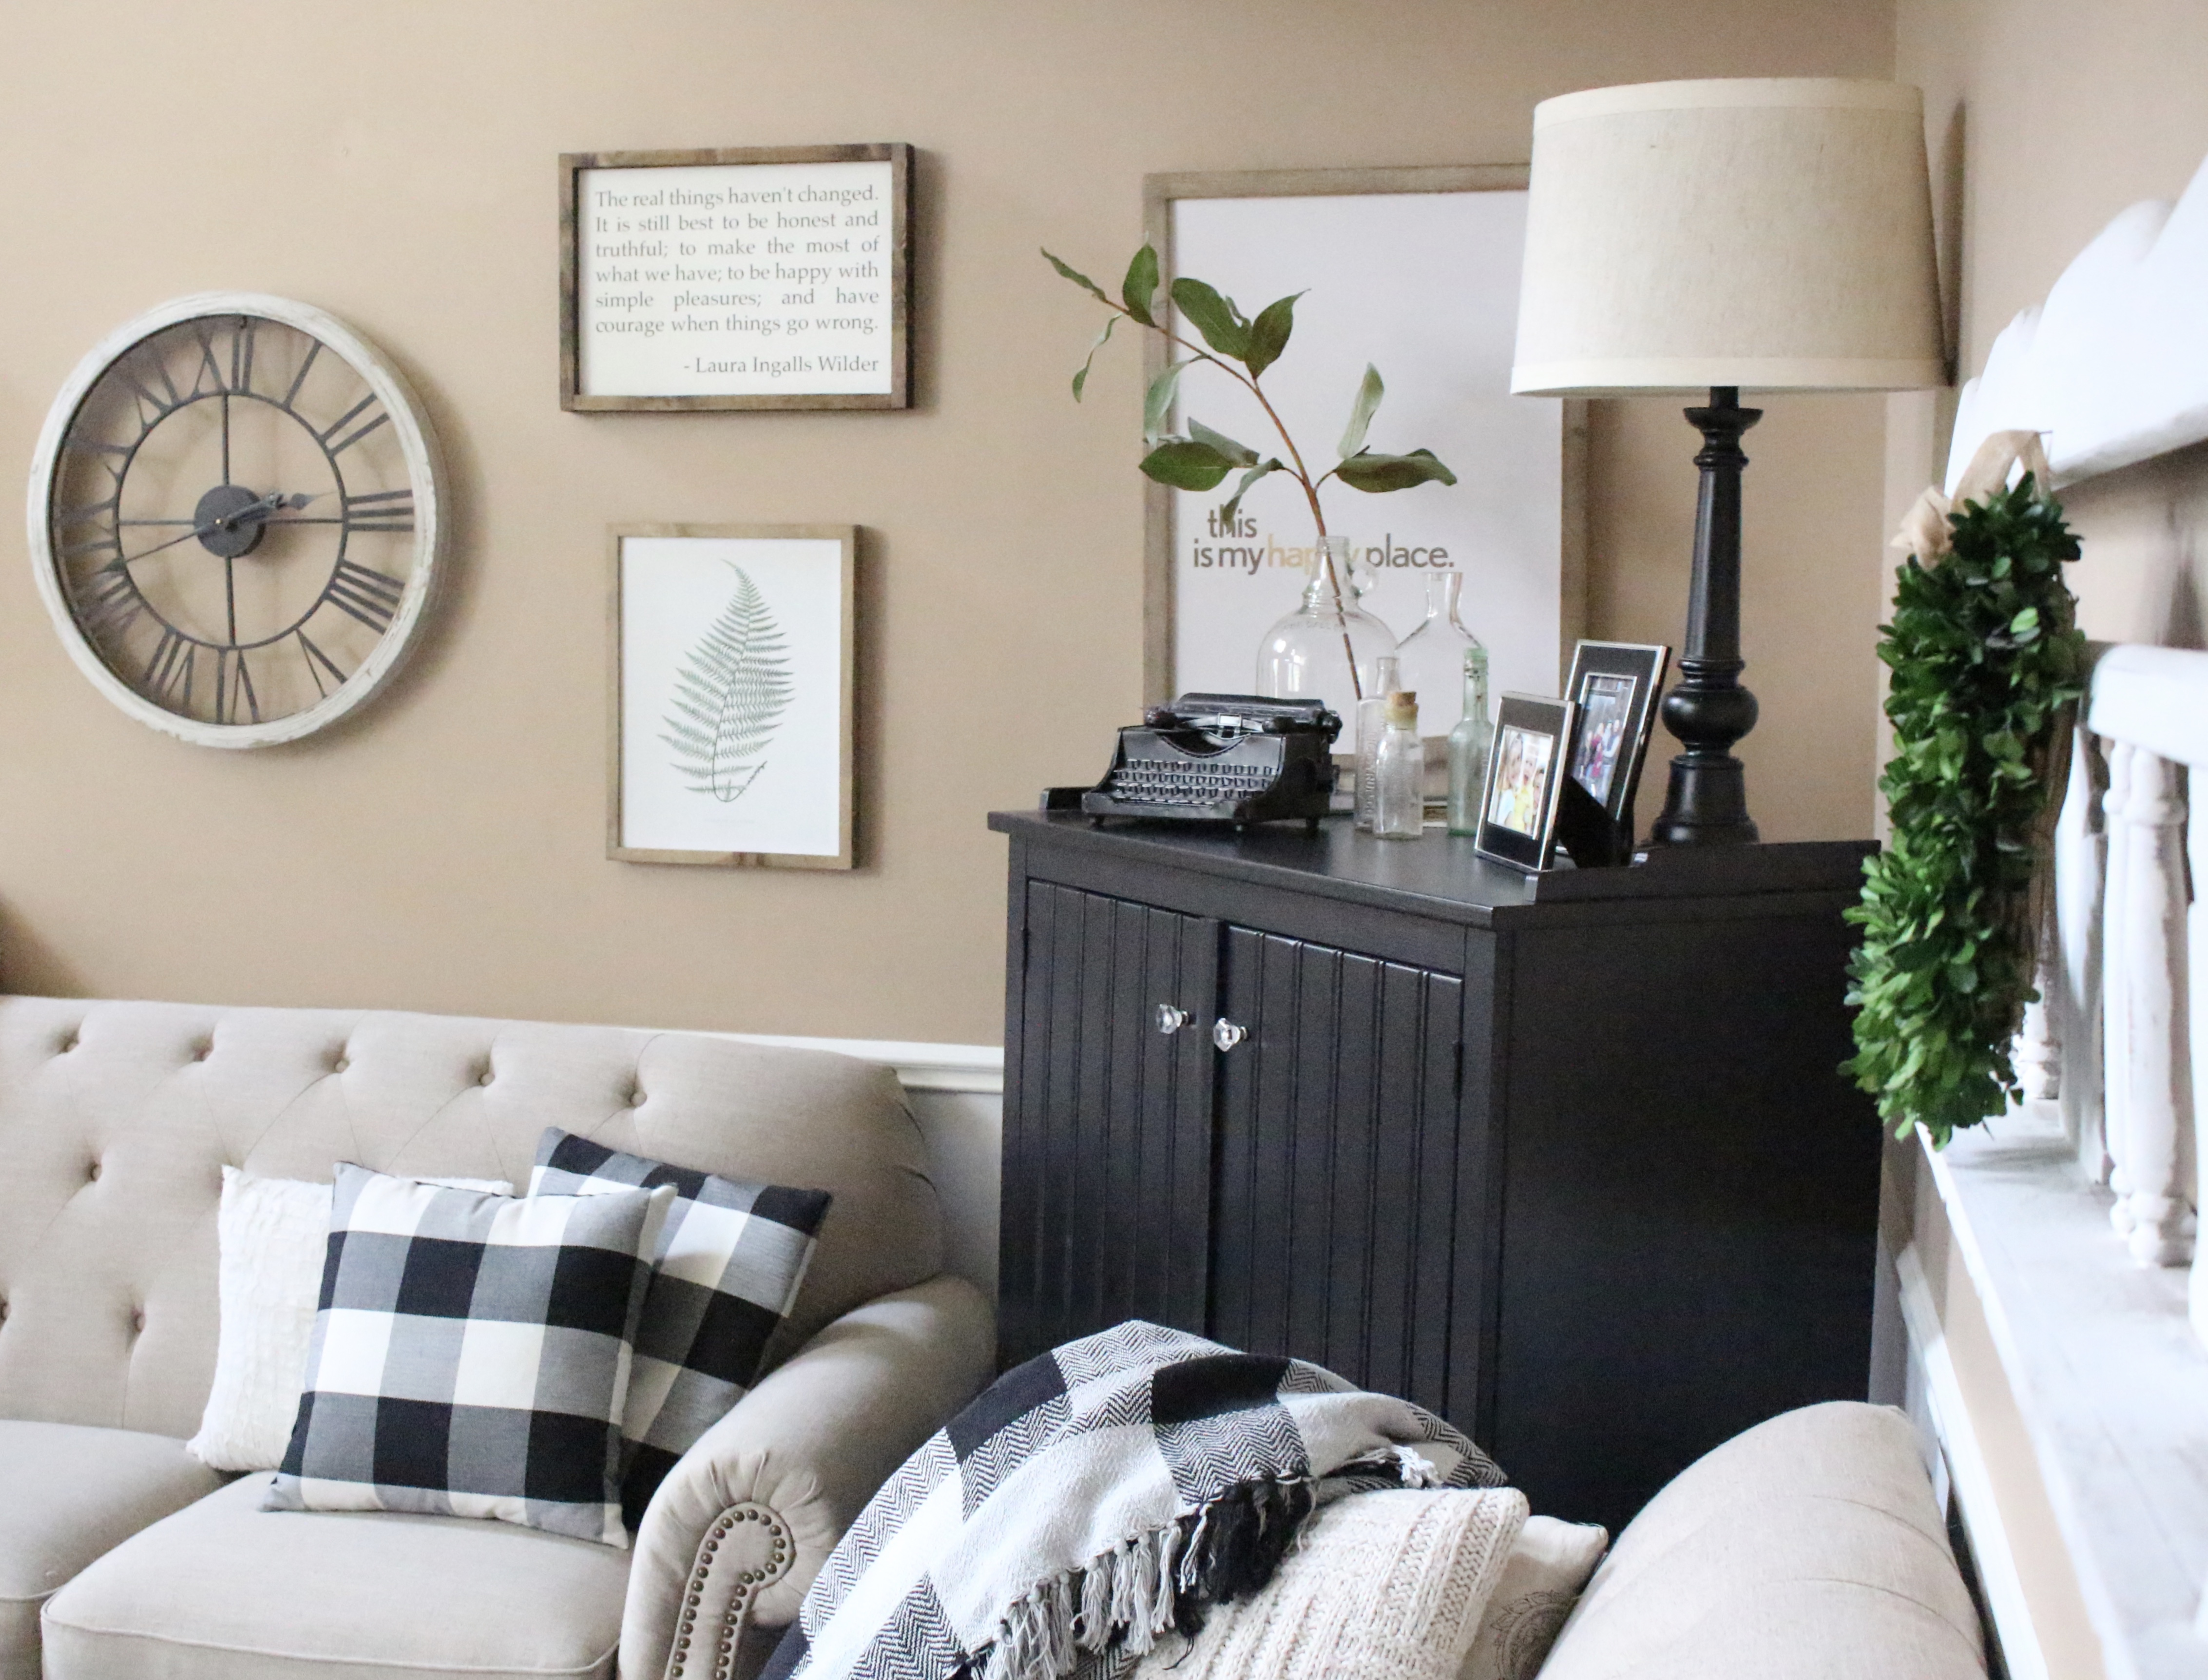 New Sideboard in the family room- Hutch- corner cabinet- farmhouse style- Arkelstorp IKEA- buffalo check- vintage typewriter- how to decorate an awkward corner- glass bottles